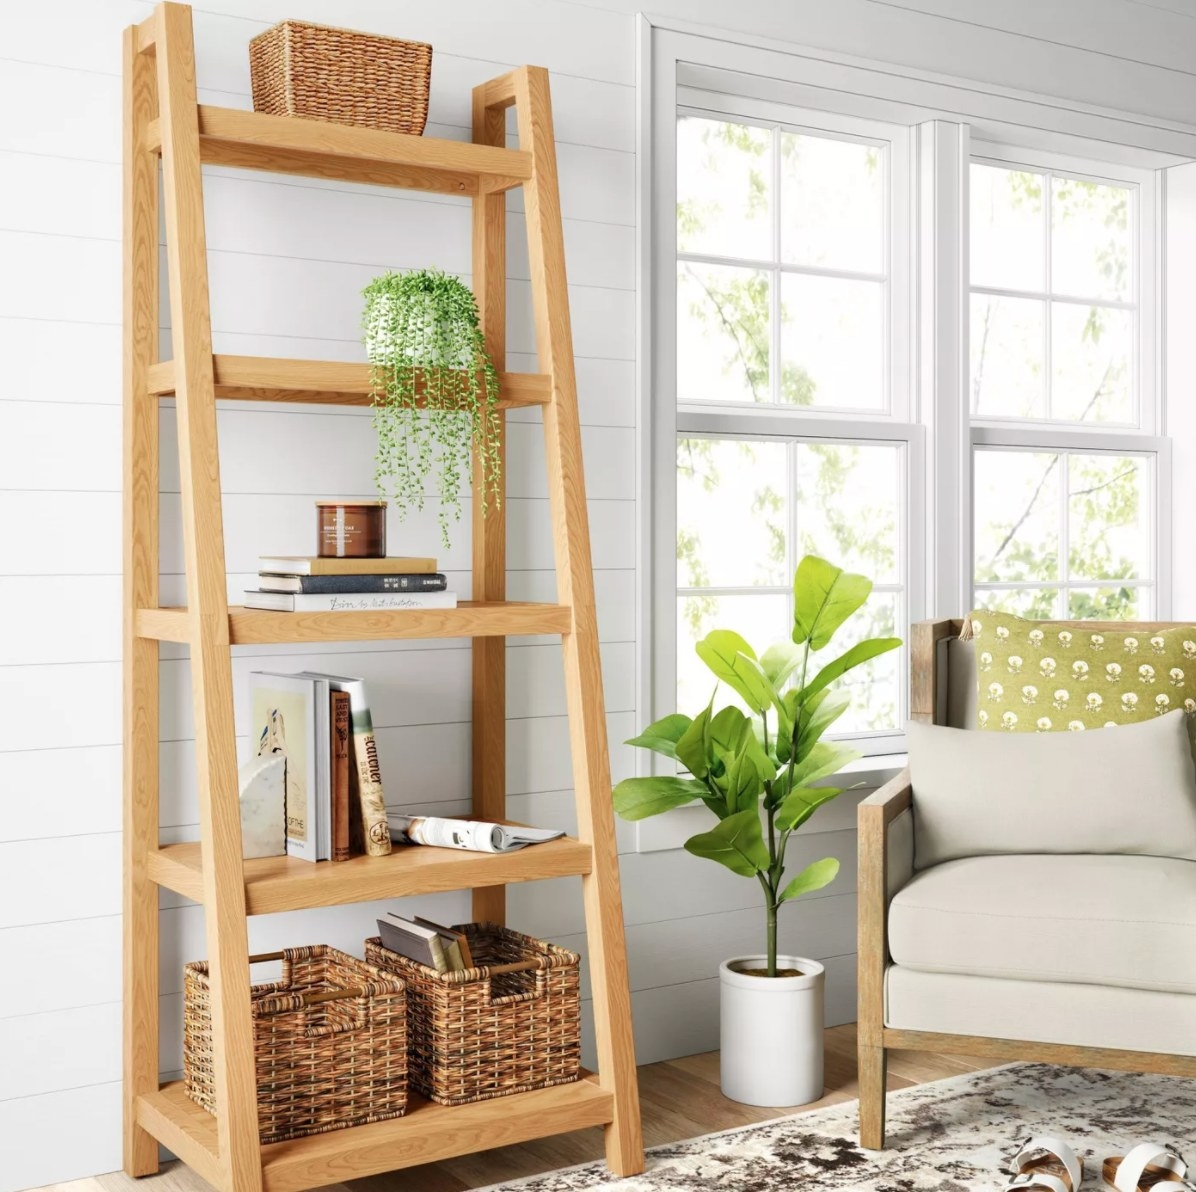 The wood ladder bookcase holding books, plants, and baskets